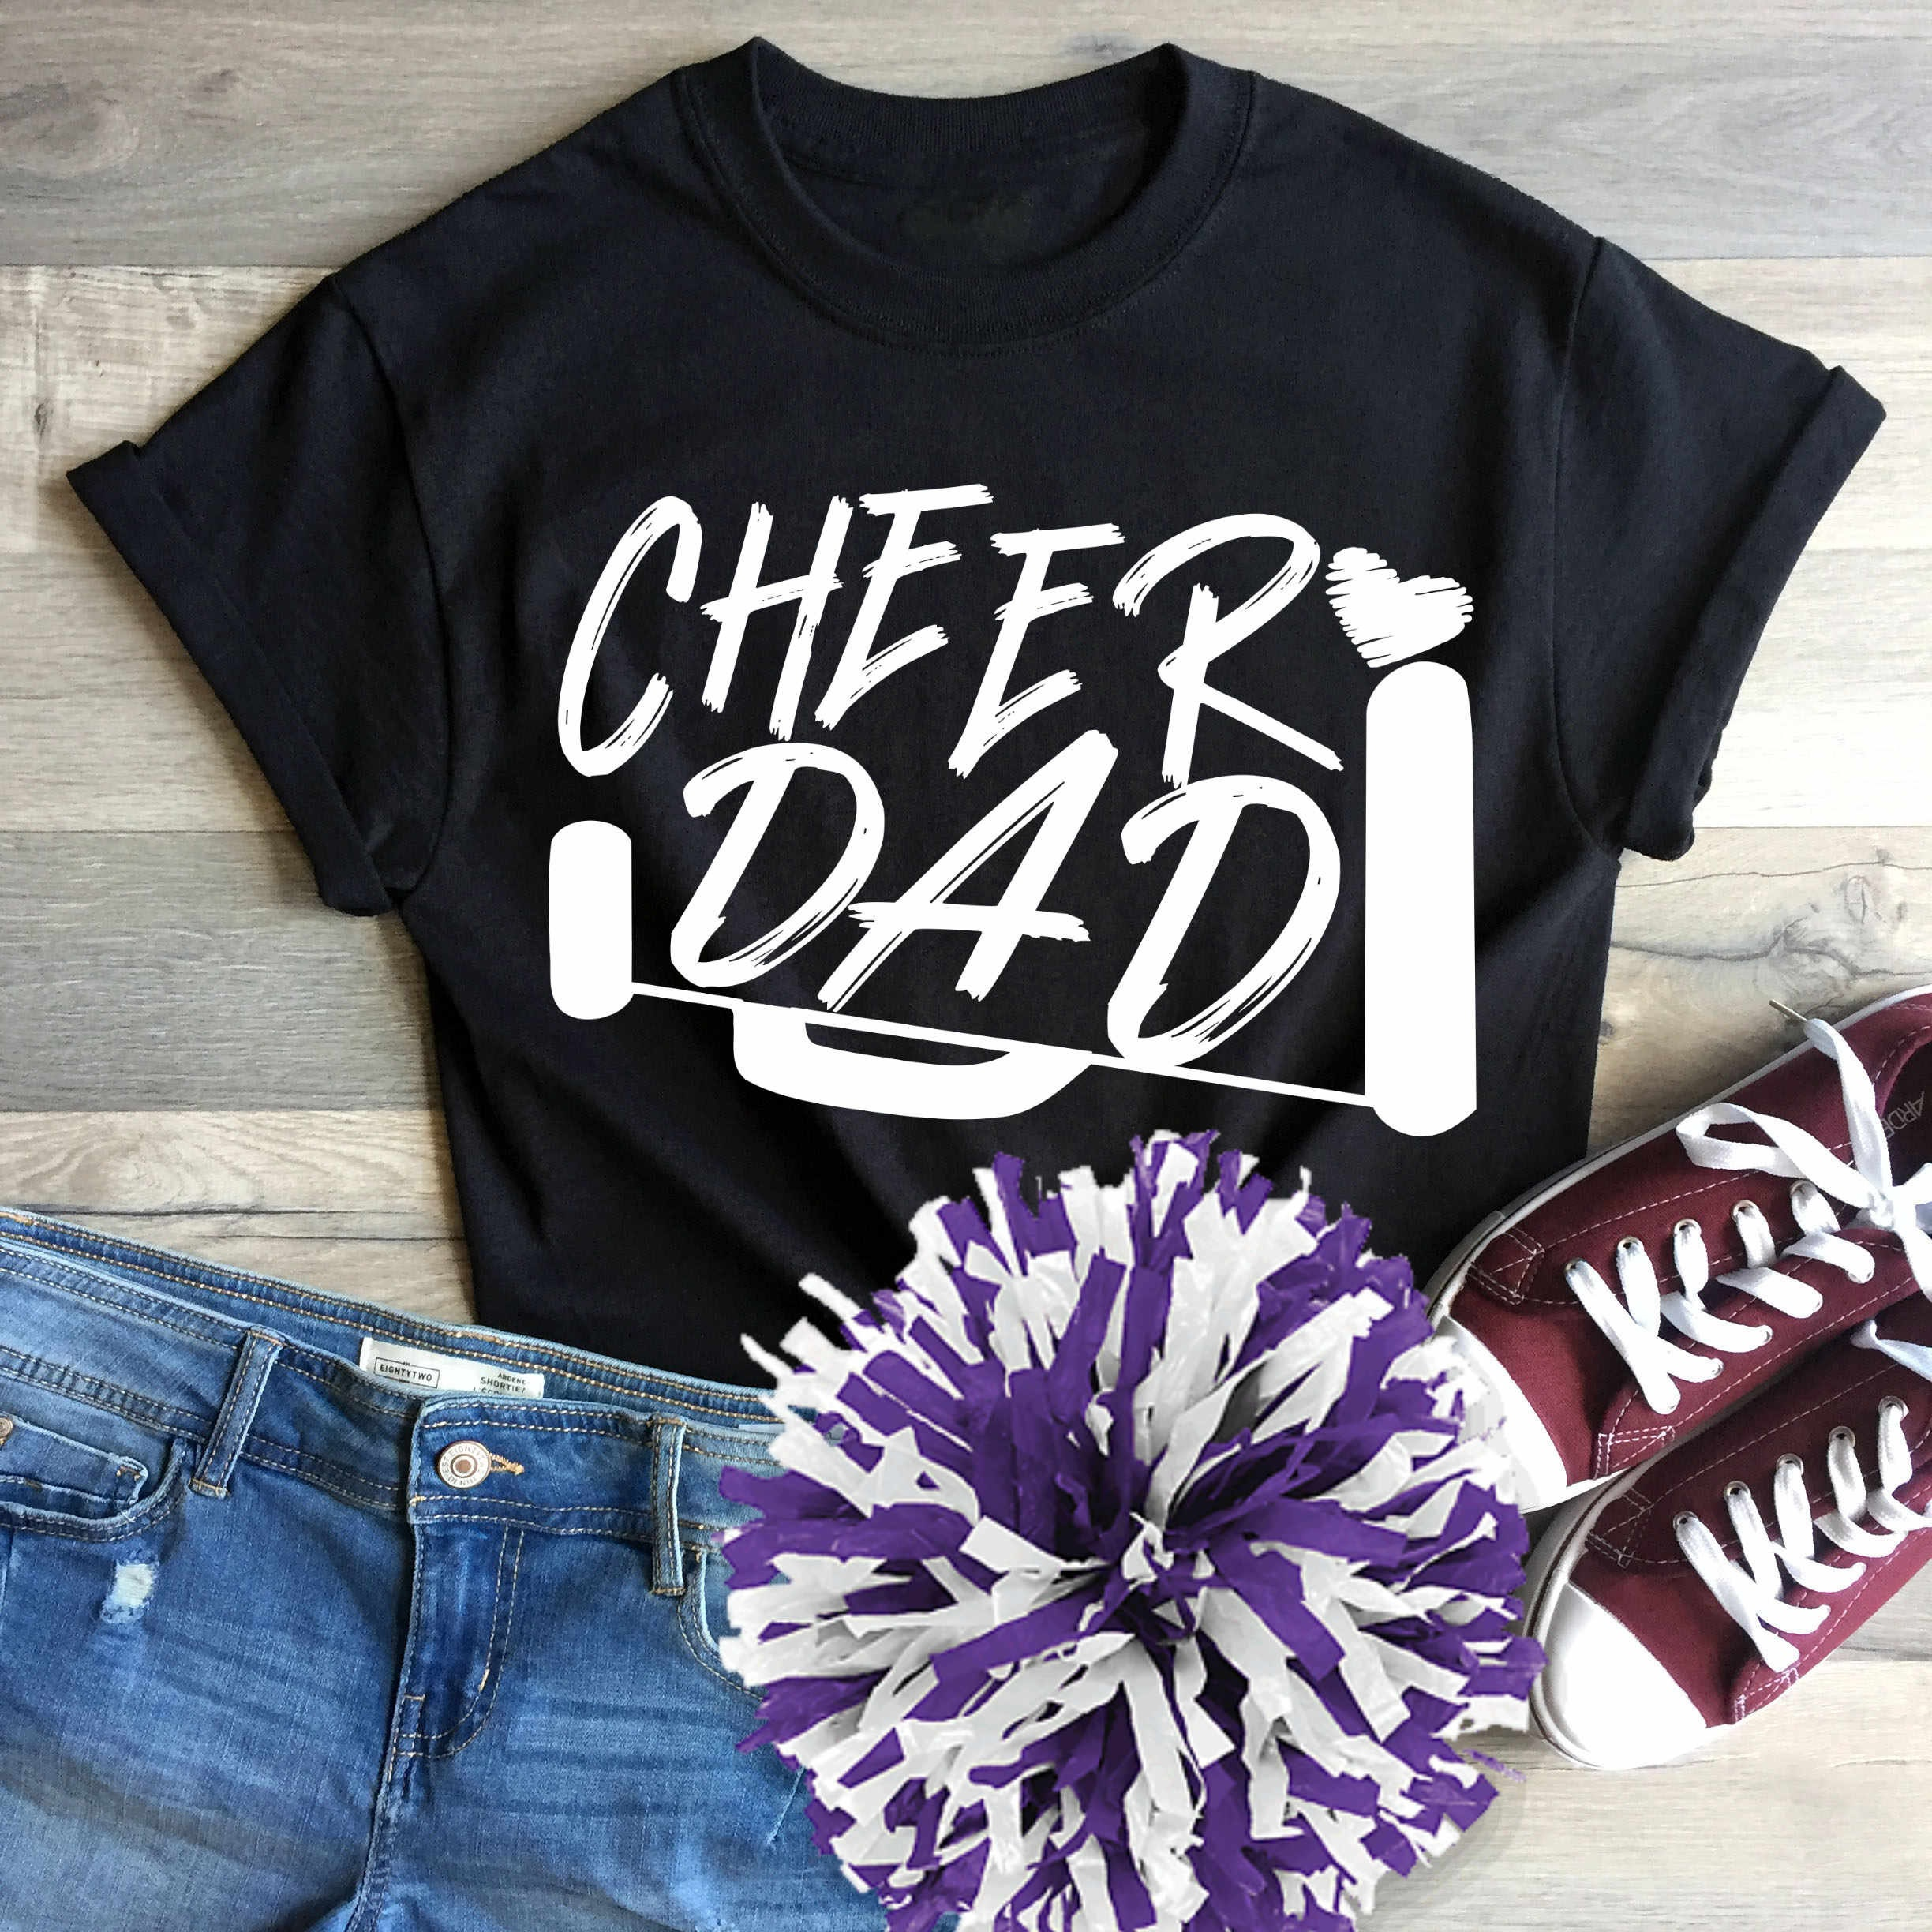 Cheer Dad Svg Cheer Svg Biggest Fan Megaphone Svg Coach Cheer Svg Design Cut File Cheerleader Clipart Eps Dxf Png Cricut Silhouette